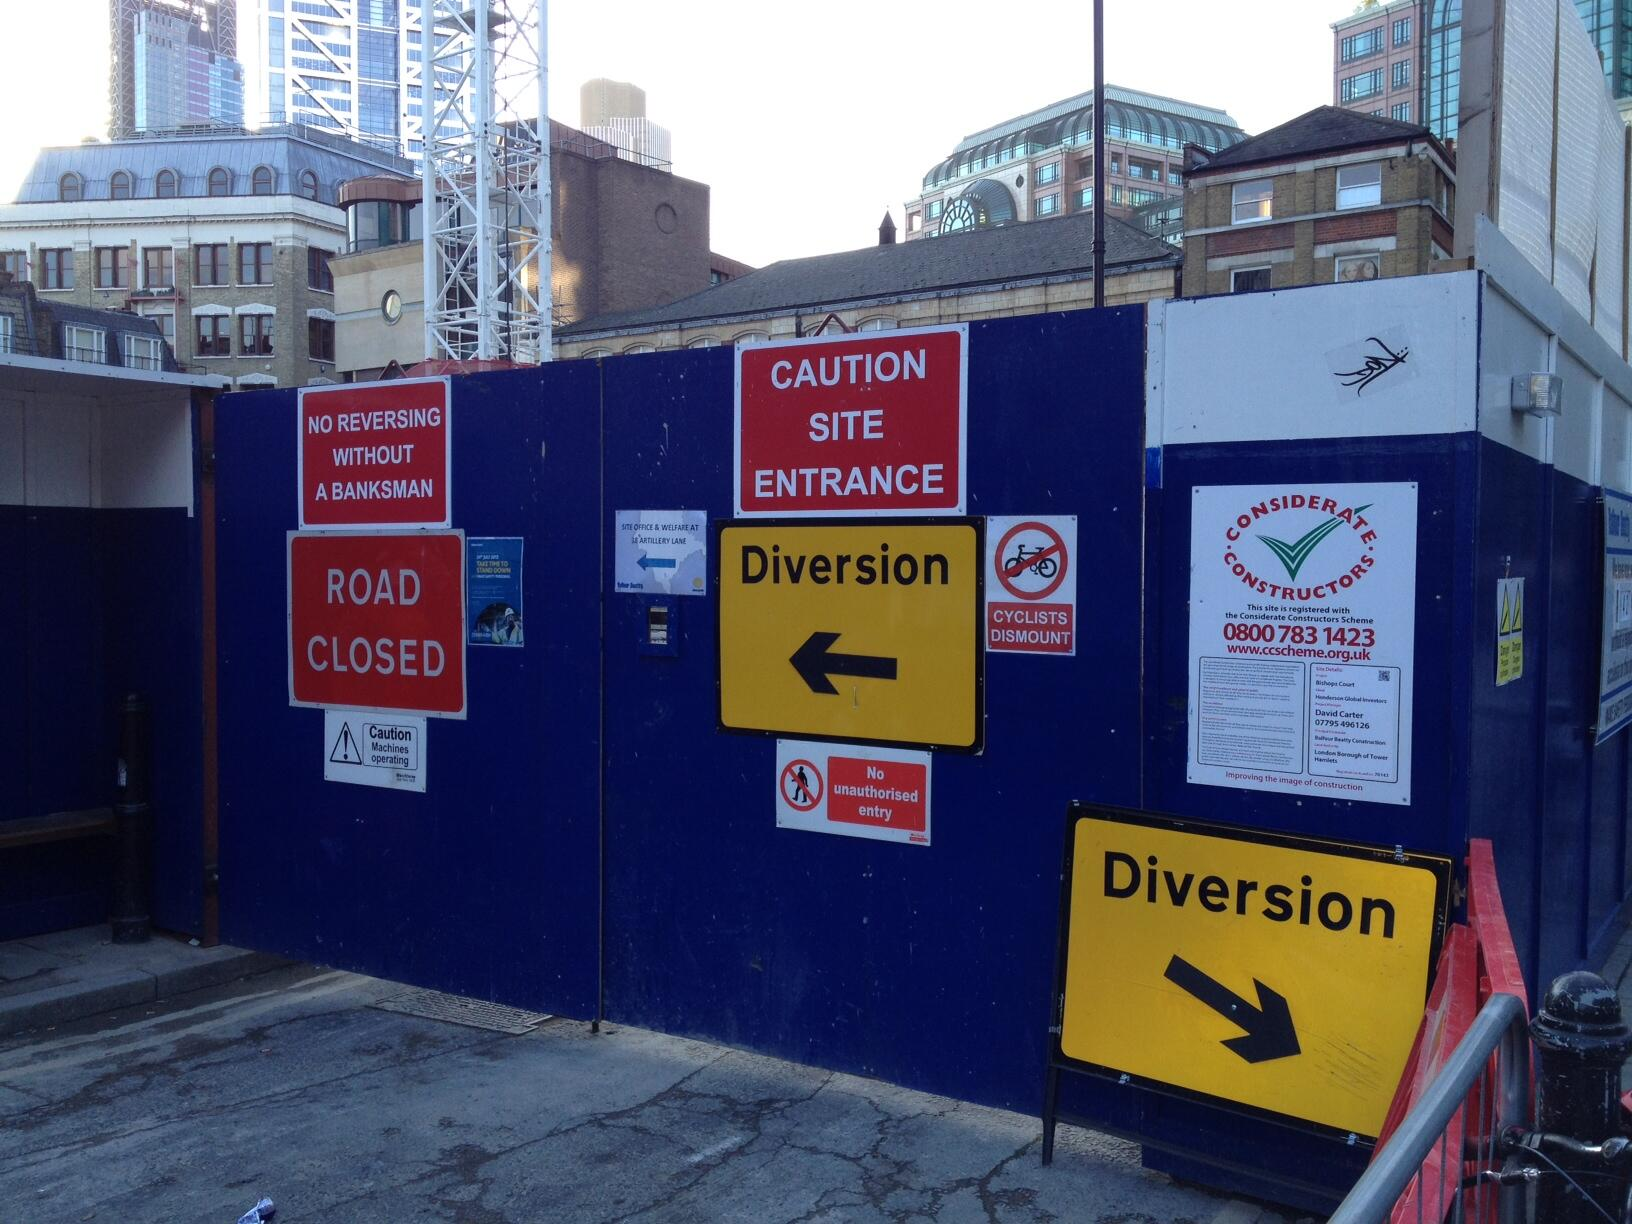 Finding plenty of diversions here in London. #funnysigns #London